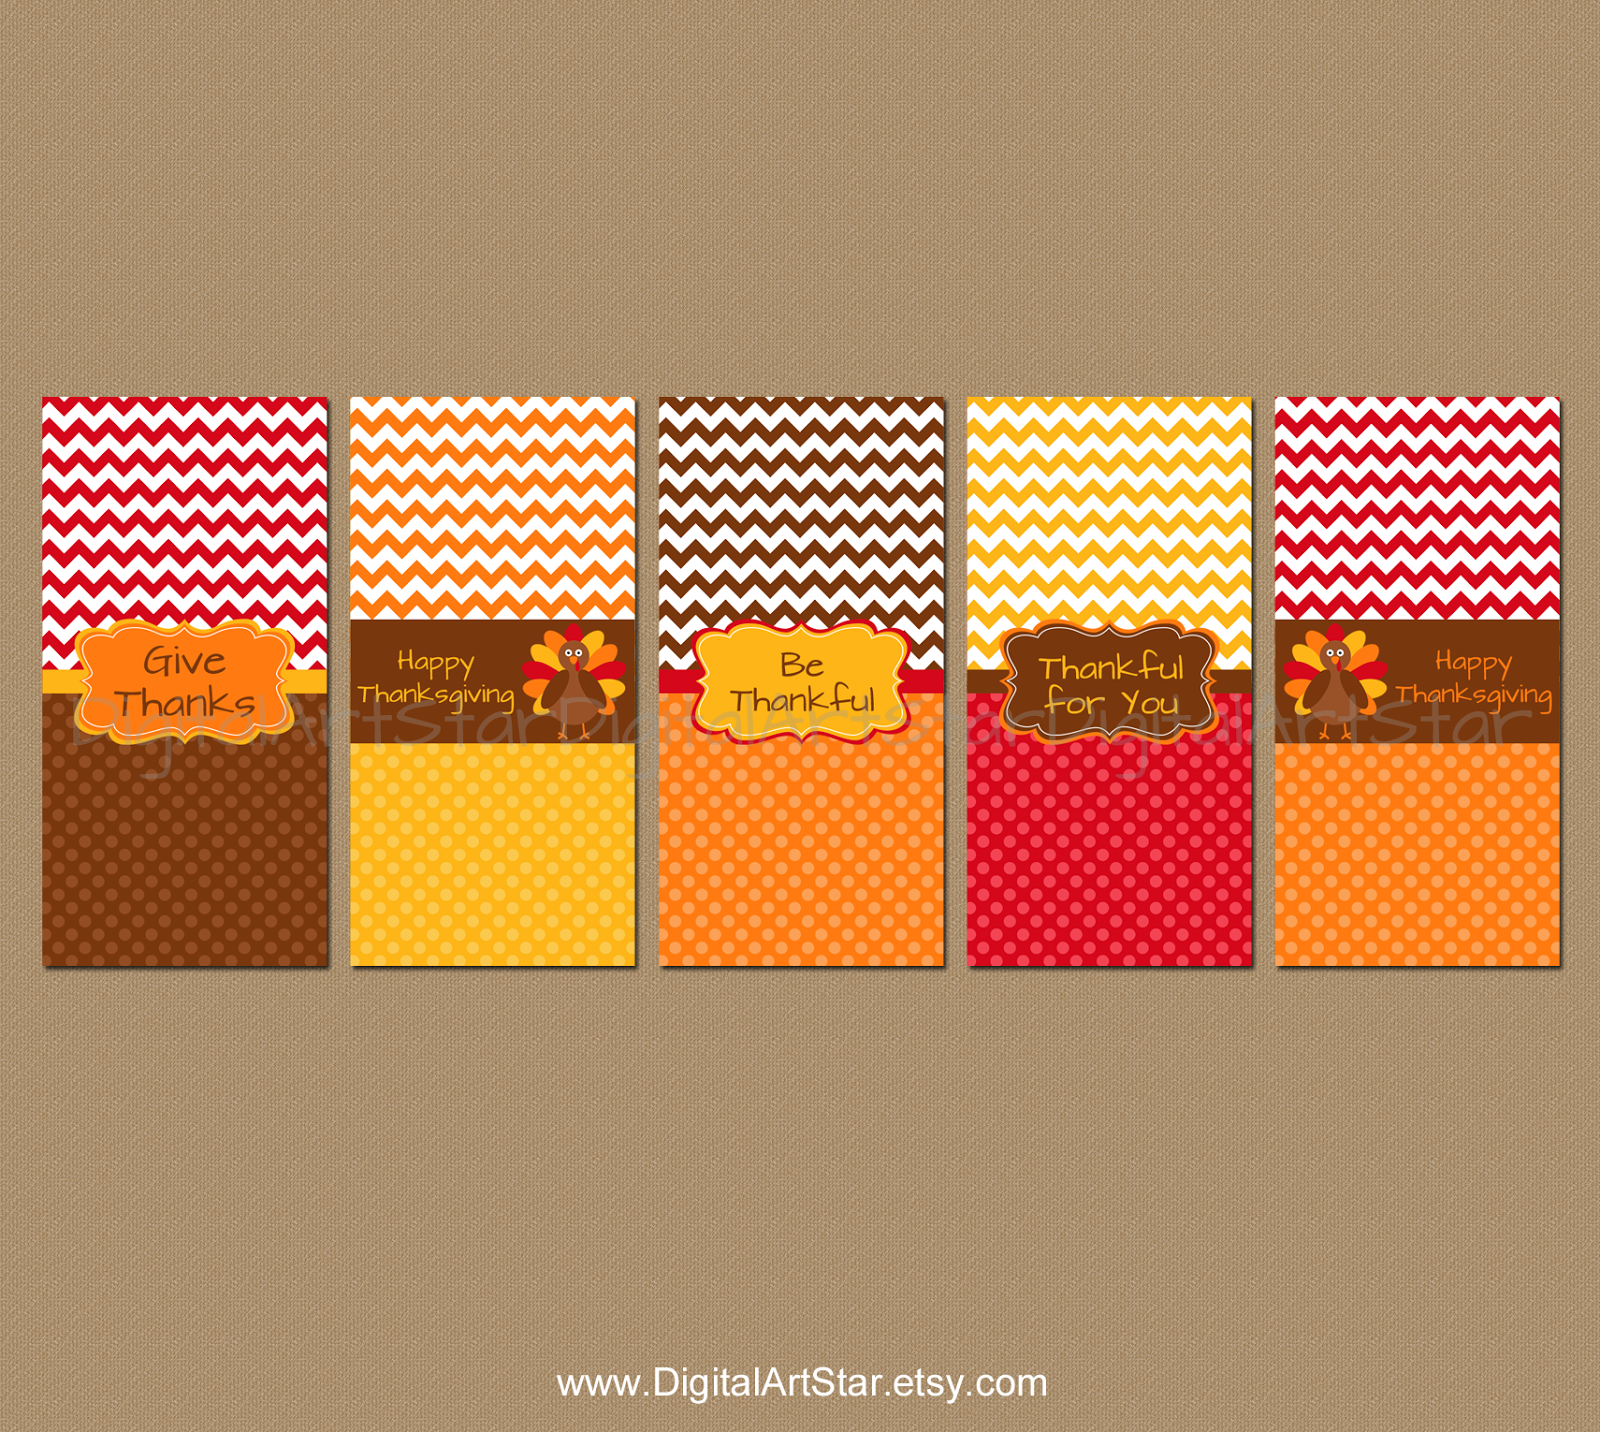 https://digitalartstar.com/collections/thanksgiving-printables/products/mini-candy-bar-wrappers-for-thanksgiving